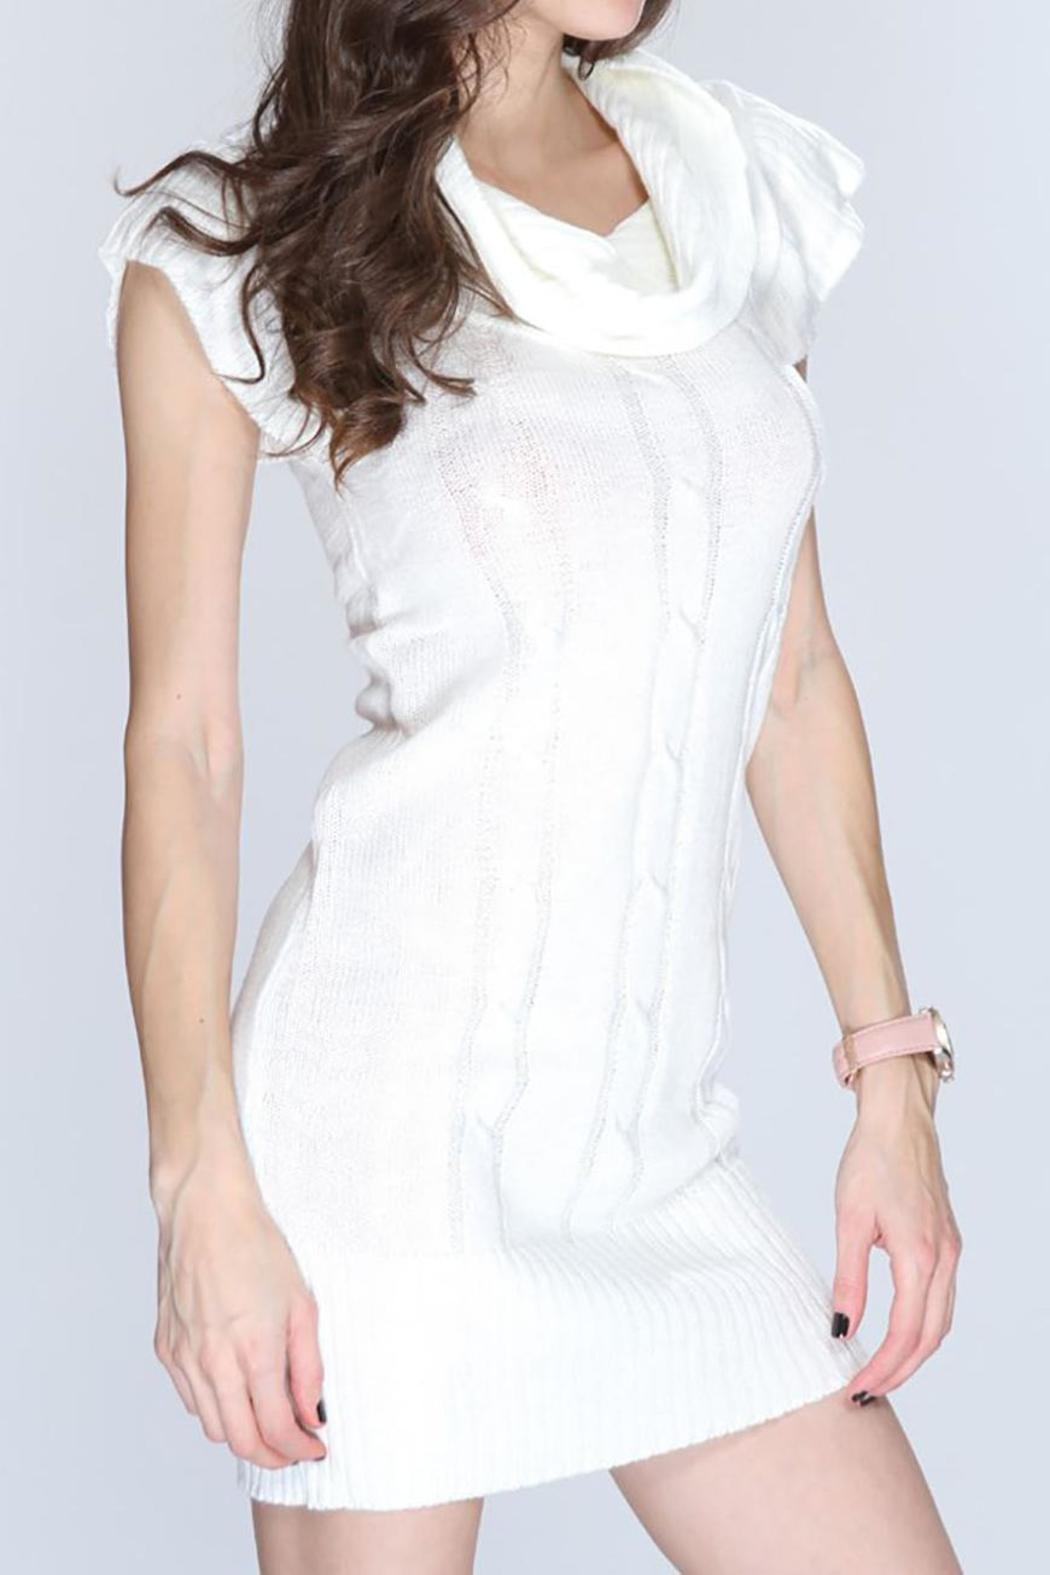 ambiance apparel White Sweater Dress from Pennsylvania by Empire ...